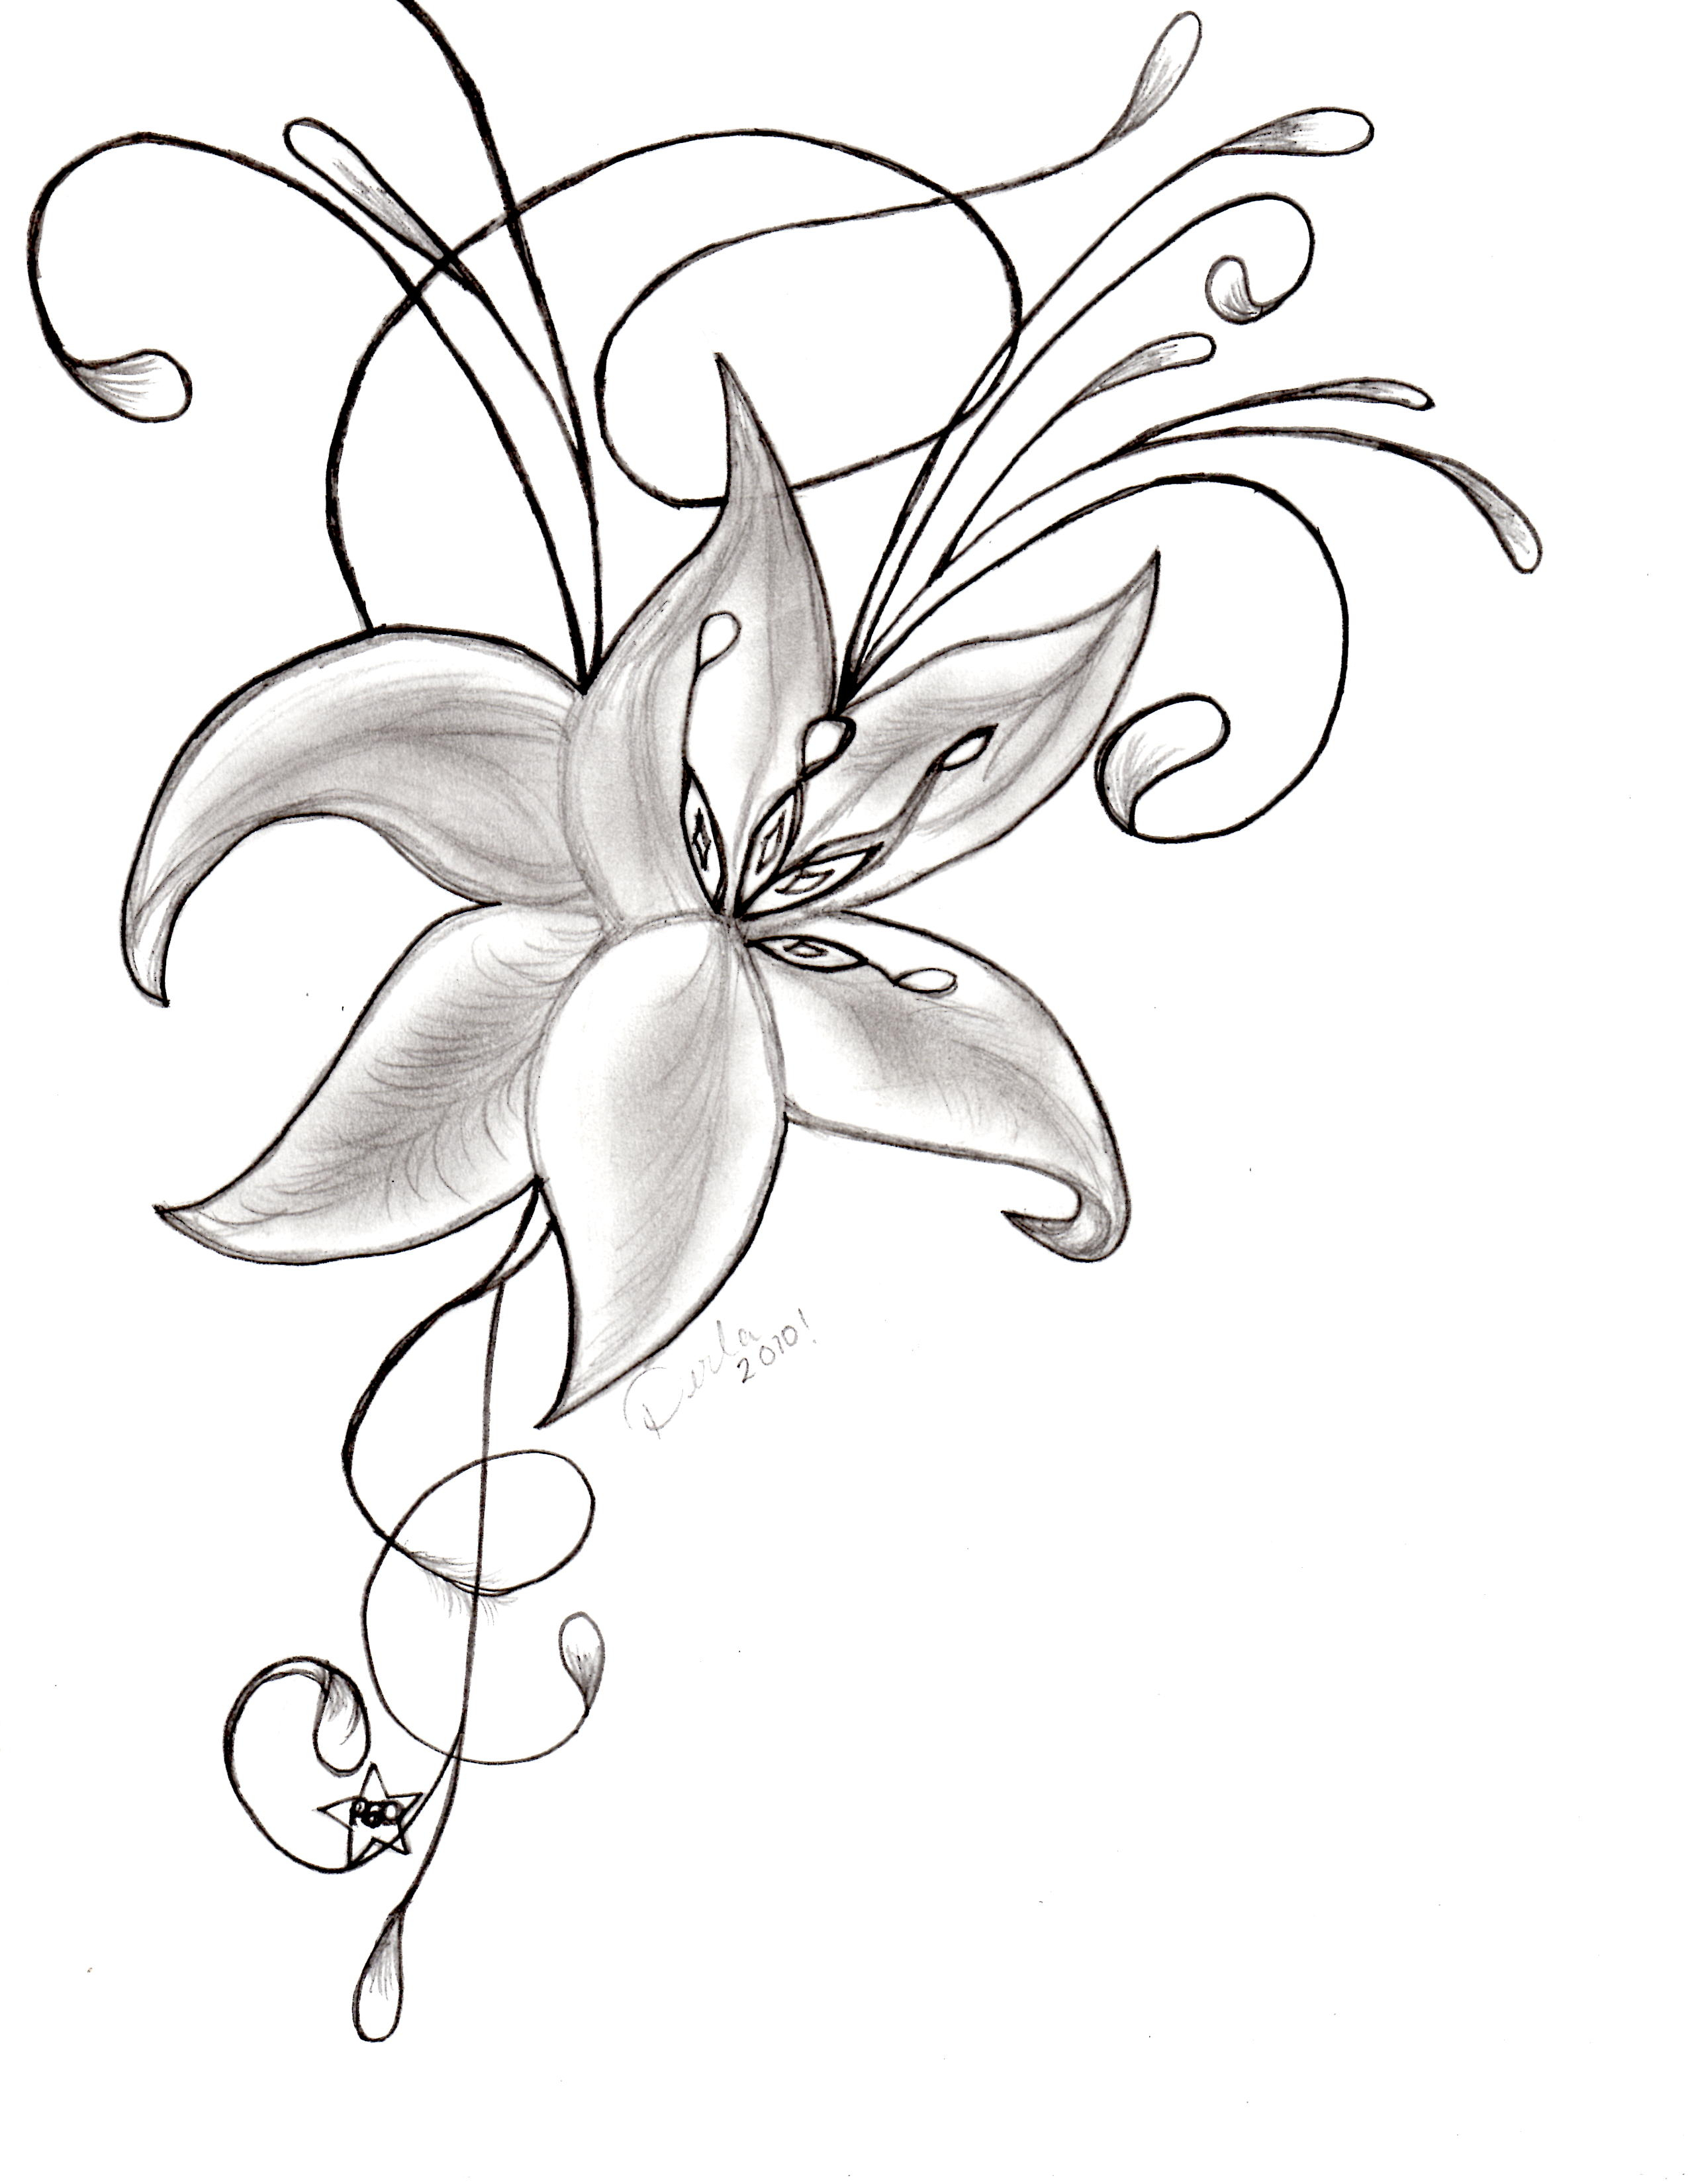 2550x3300 Nice Flowers To Draw Nice Flowers To Draw. How To Draw A Narcissus